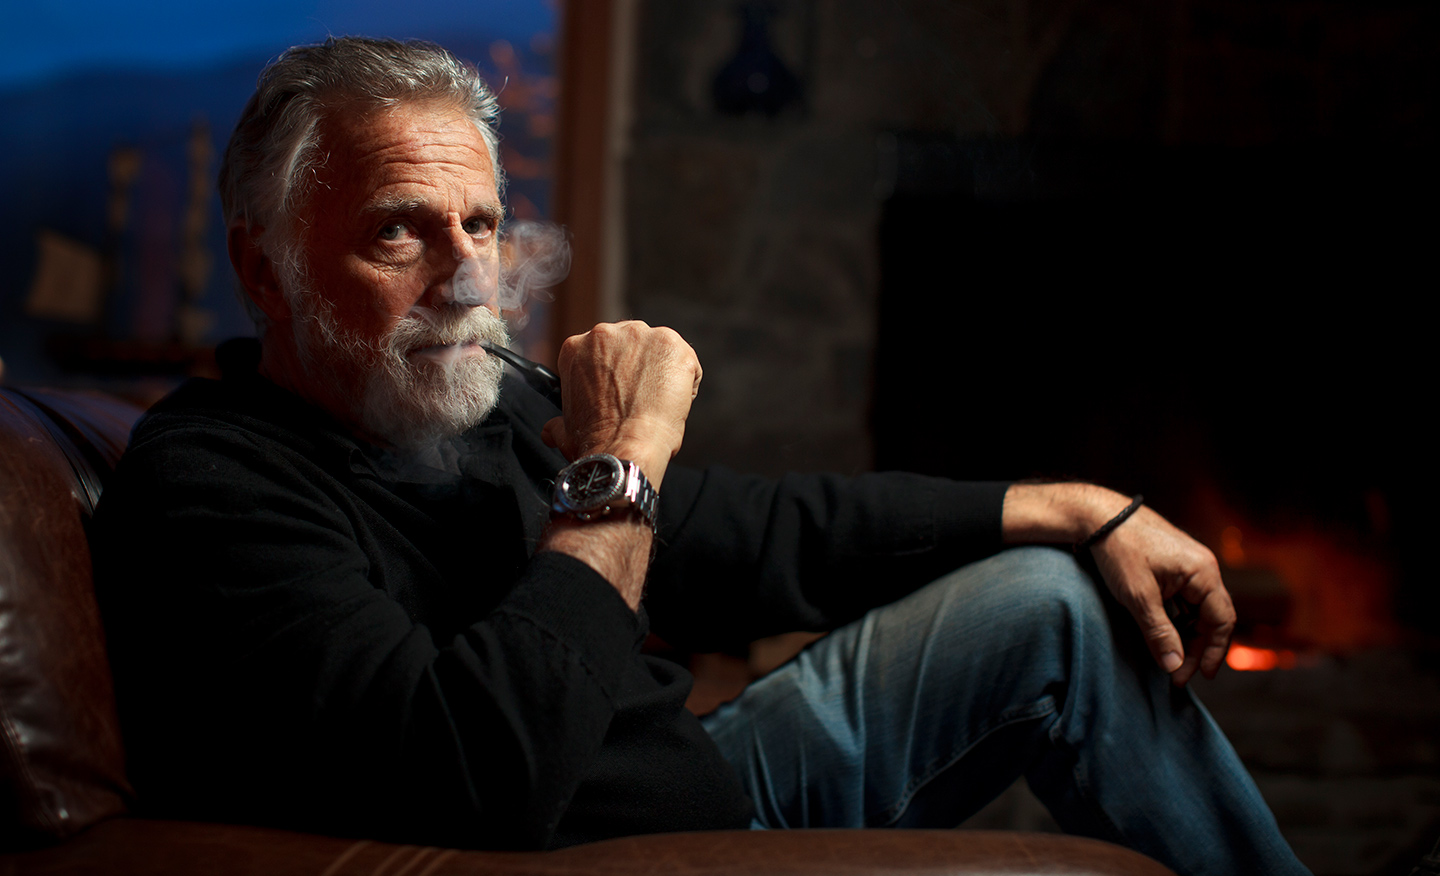 c38c5303e5 ... president's birthday party. The Most Interesting Man in the World